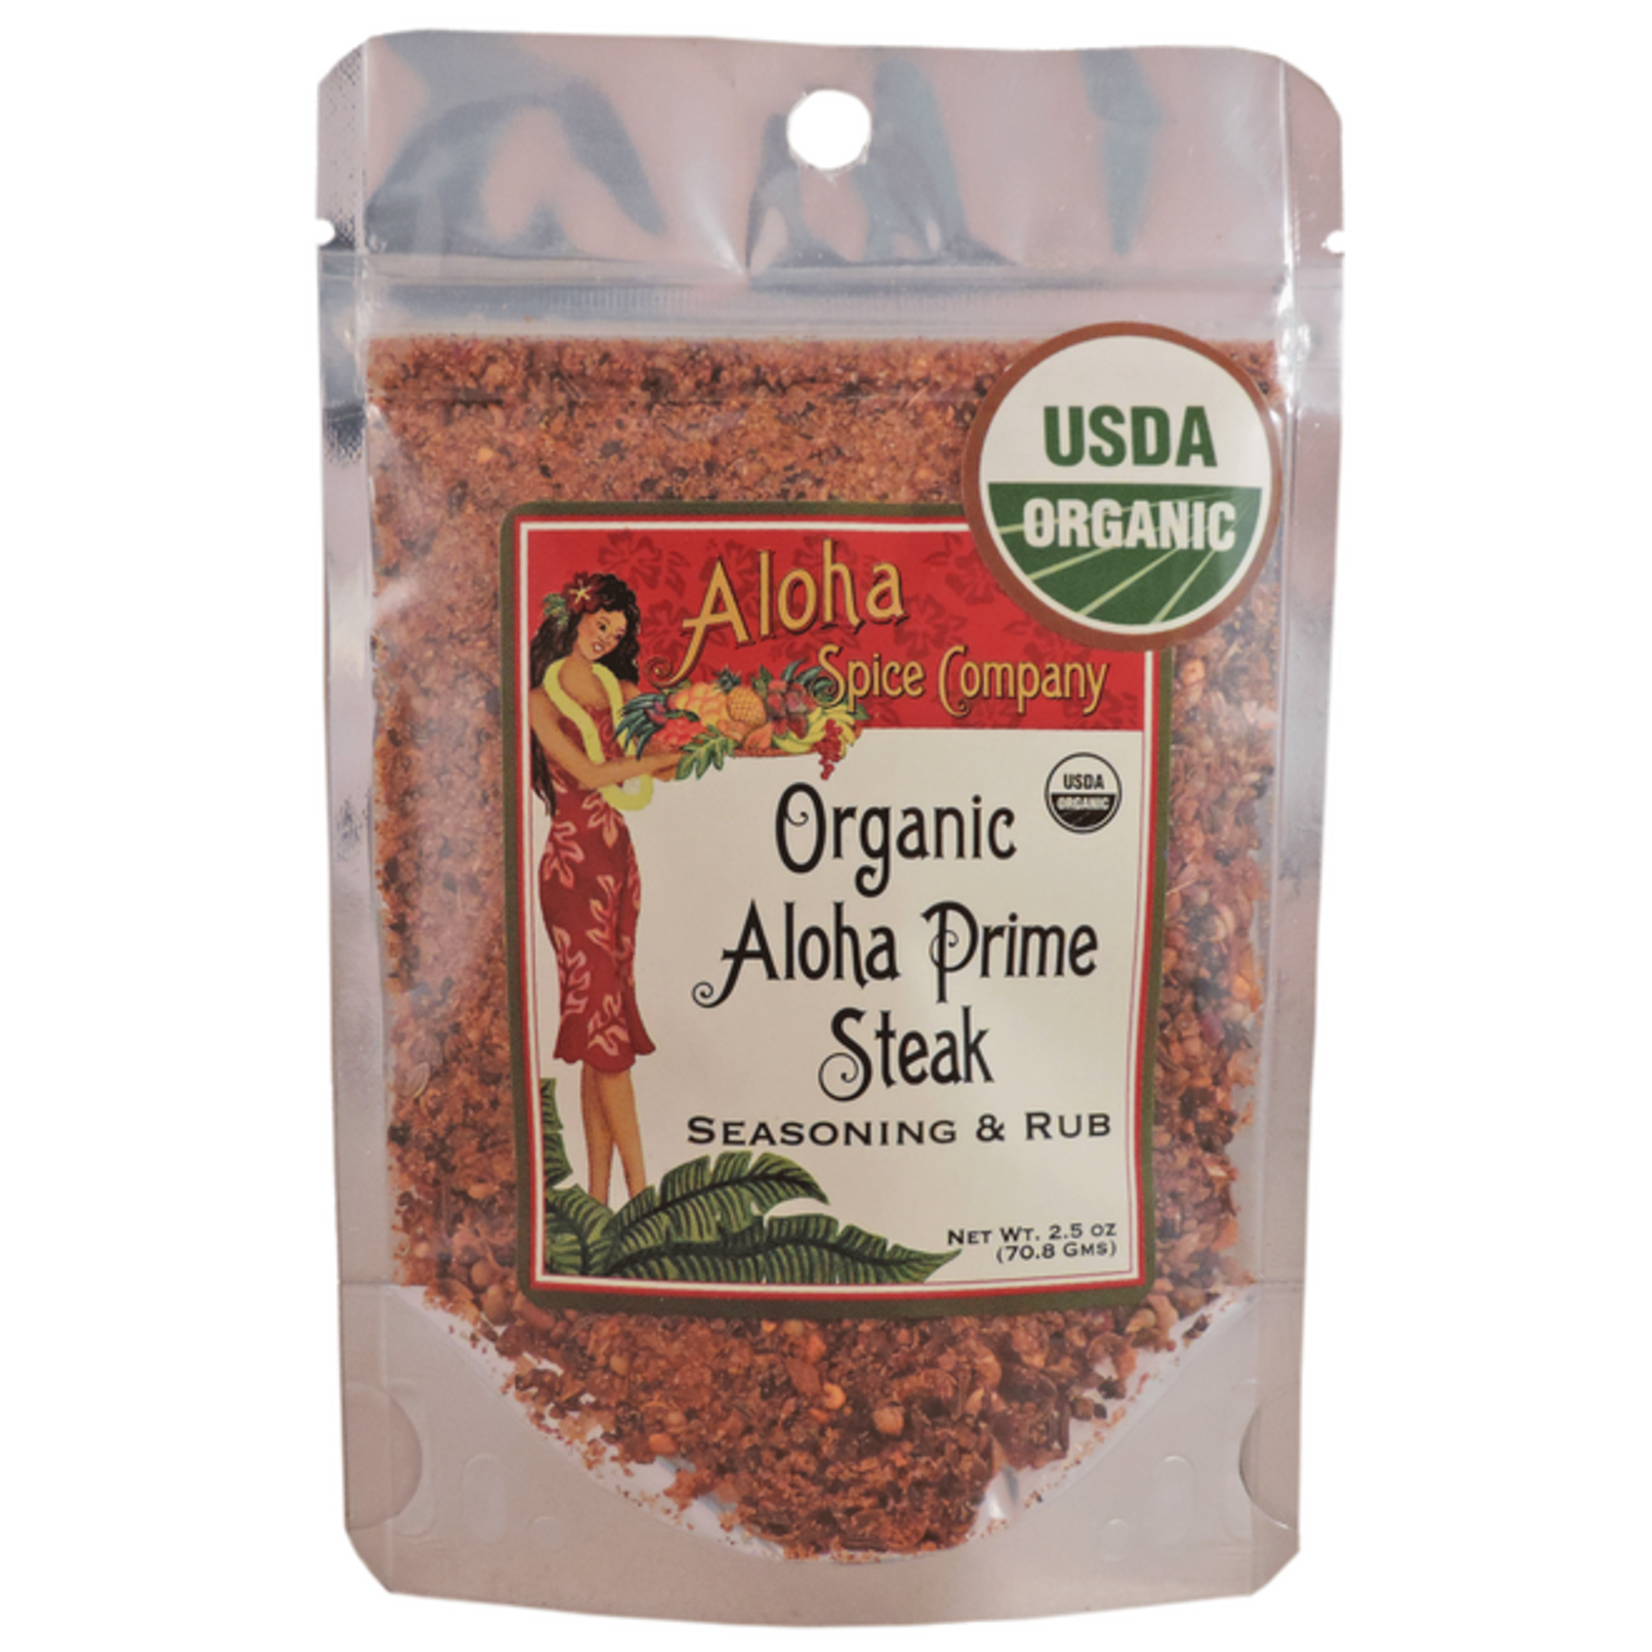 Aloha Spice Co. Organic Aloha Prime Steak Seasoning & Rub